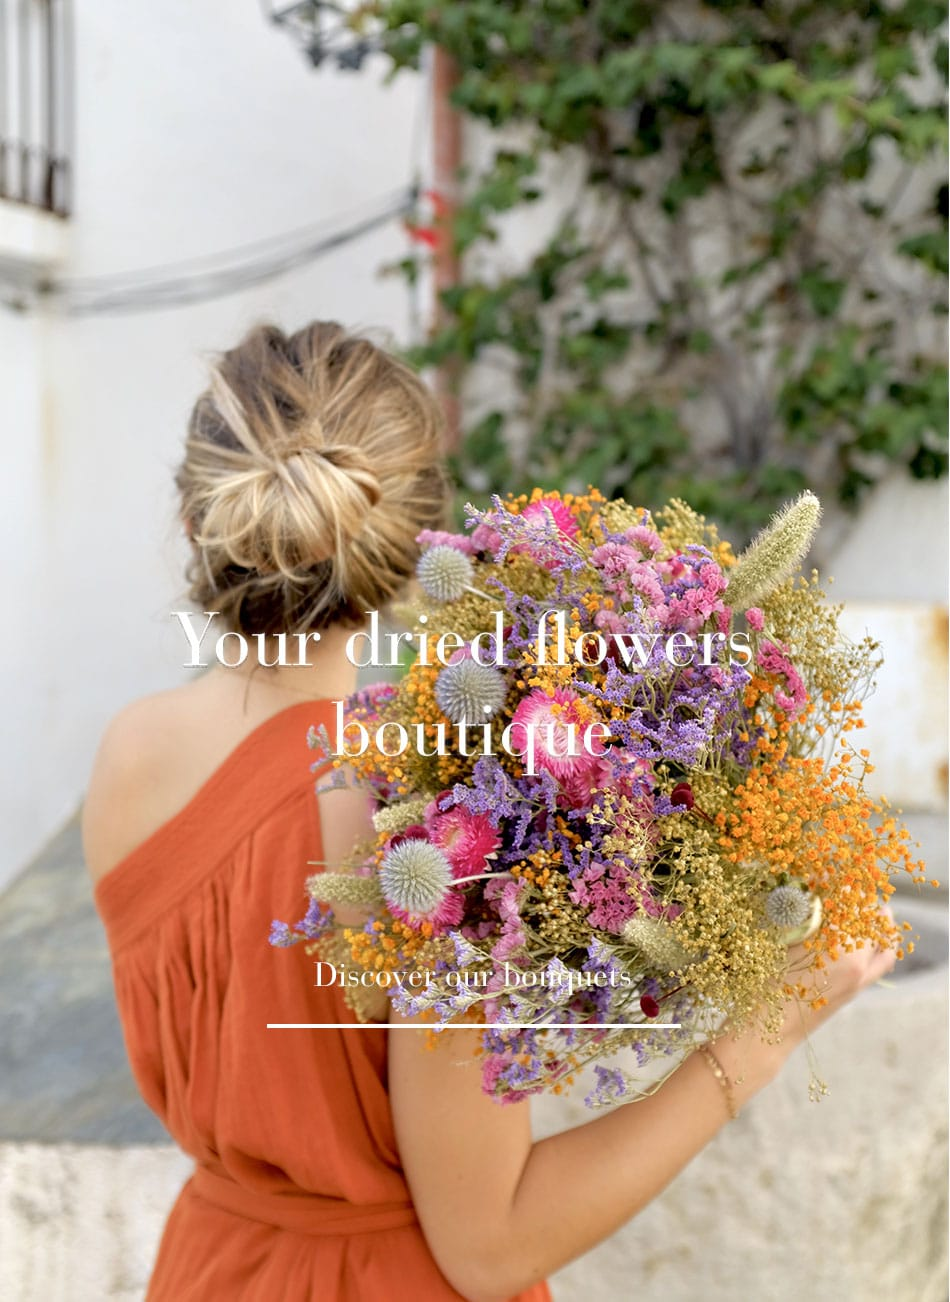 Rosa-cadaques-dried-flowers